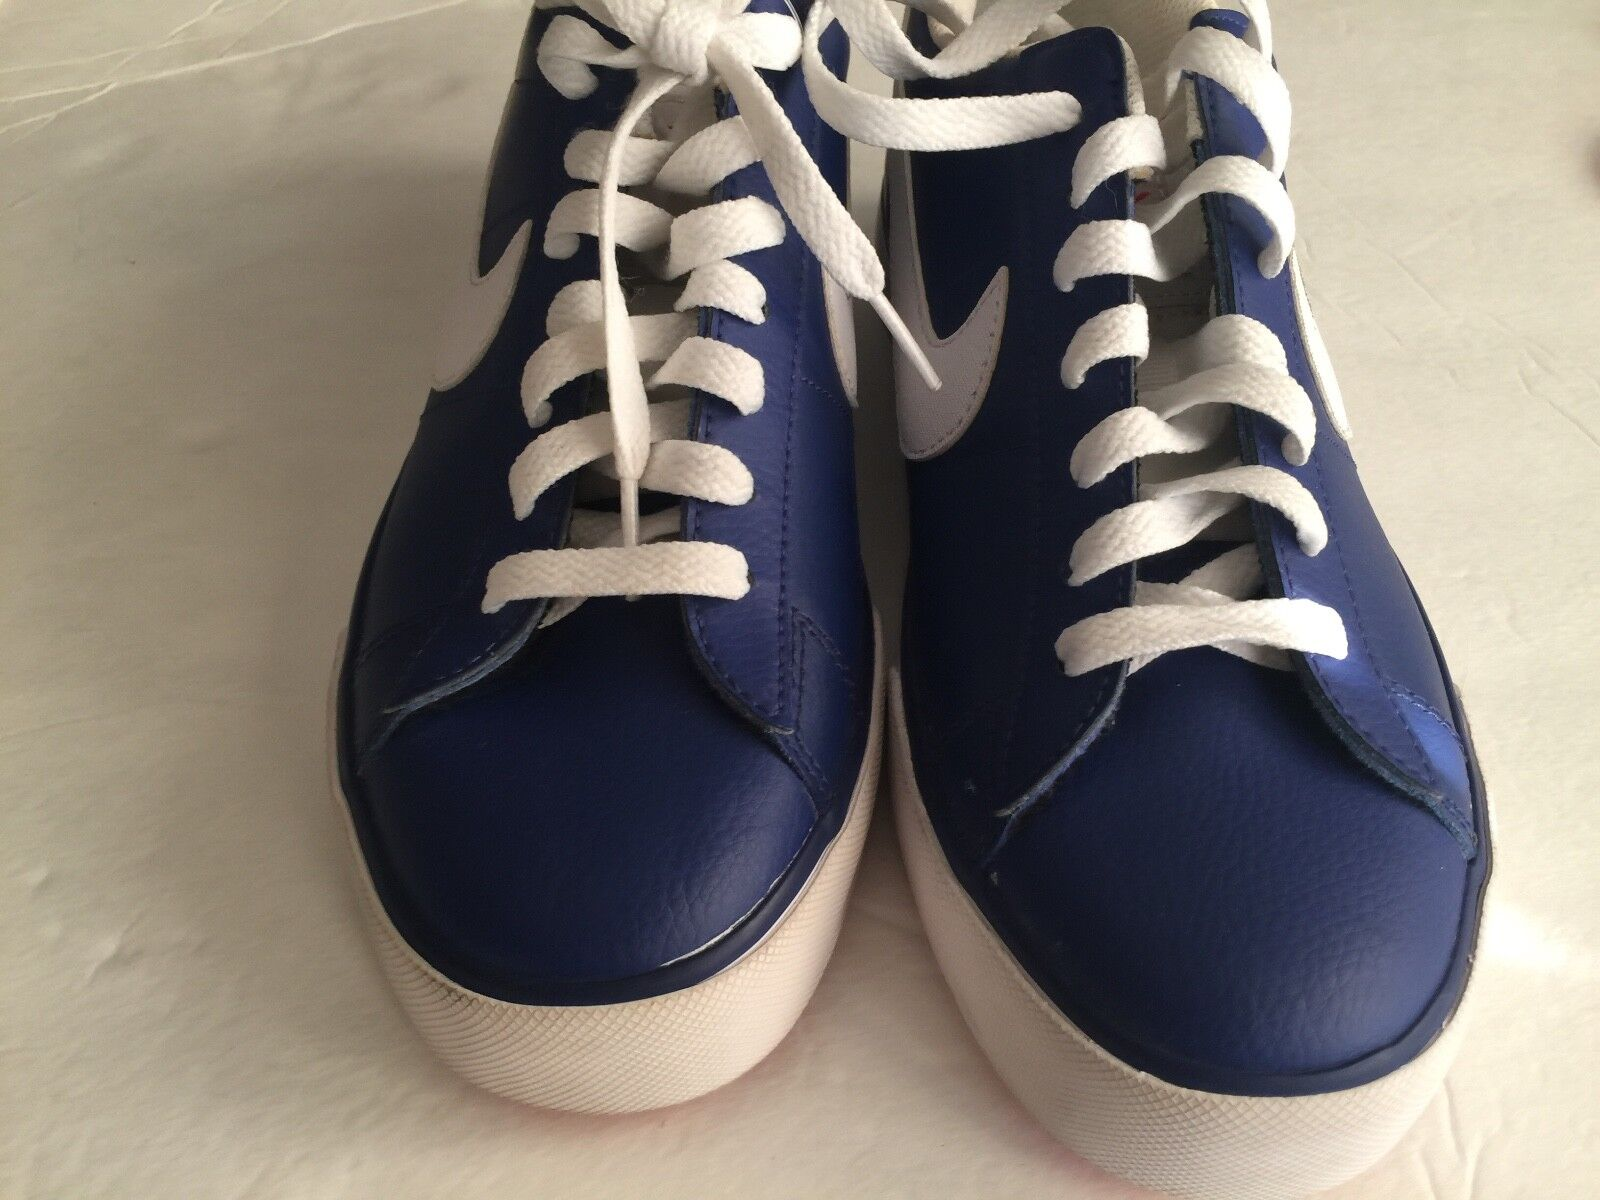 NIKE MEN 8  SWEET CLASSIC LEATHER SHOES BLUE white 318333-413 new The latest discount shoes for men and women